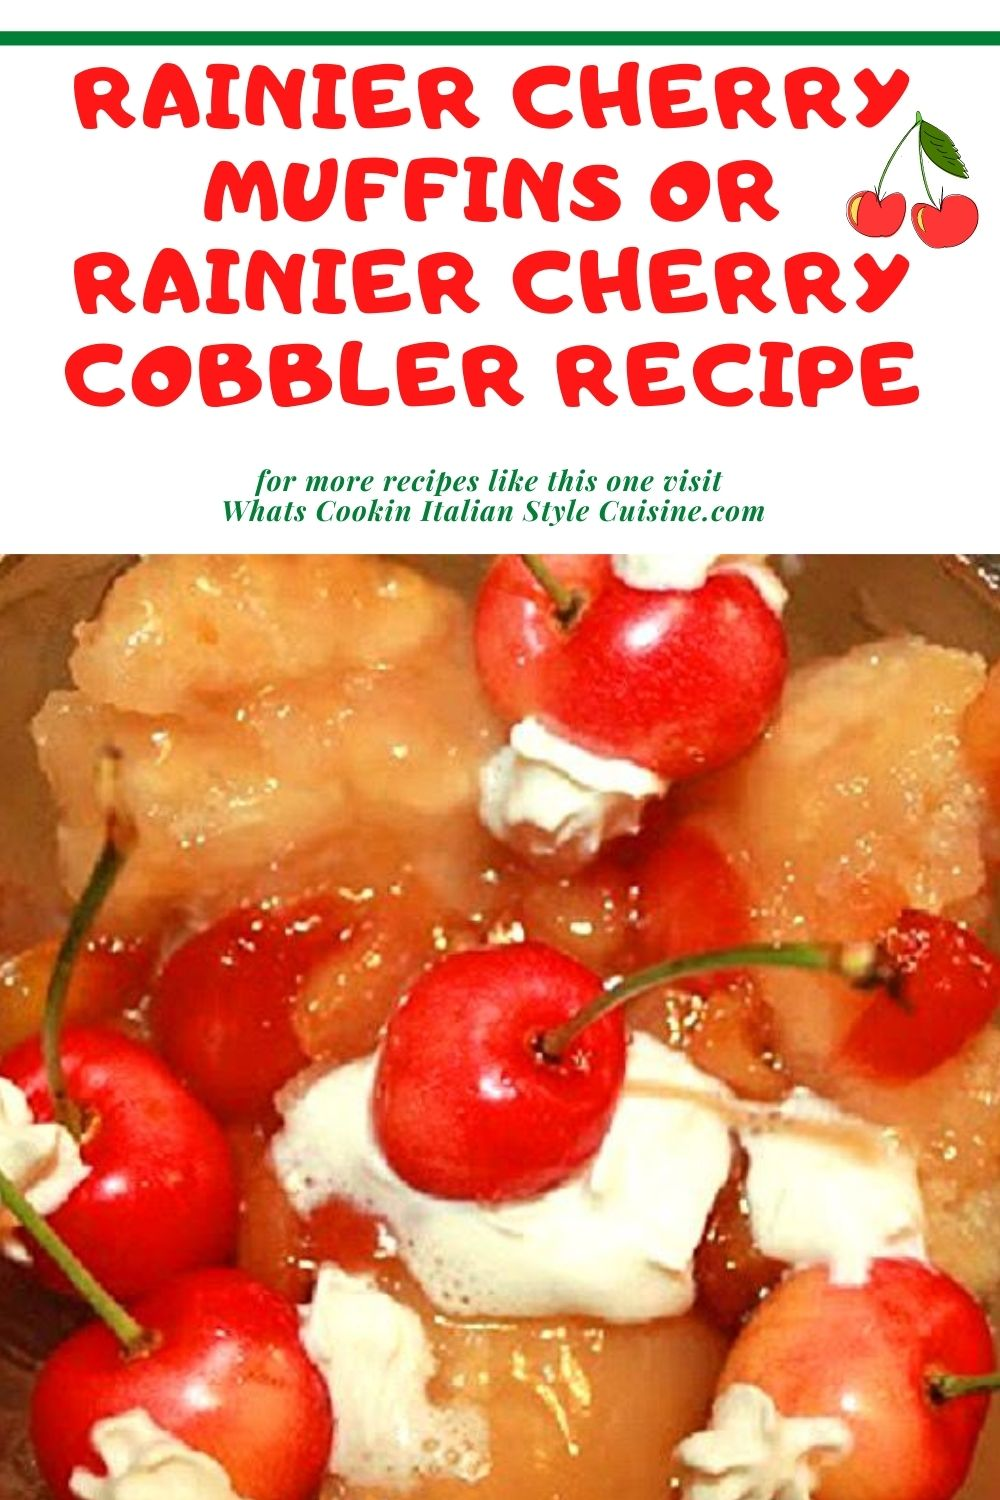 this is a pin on how to make rainier cherry muffins or cobblers